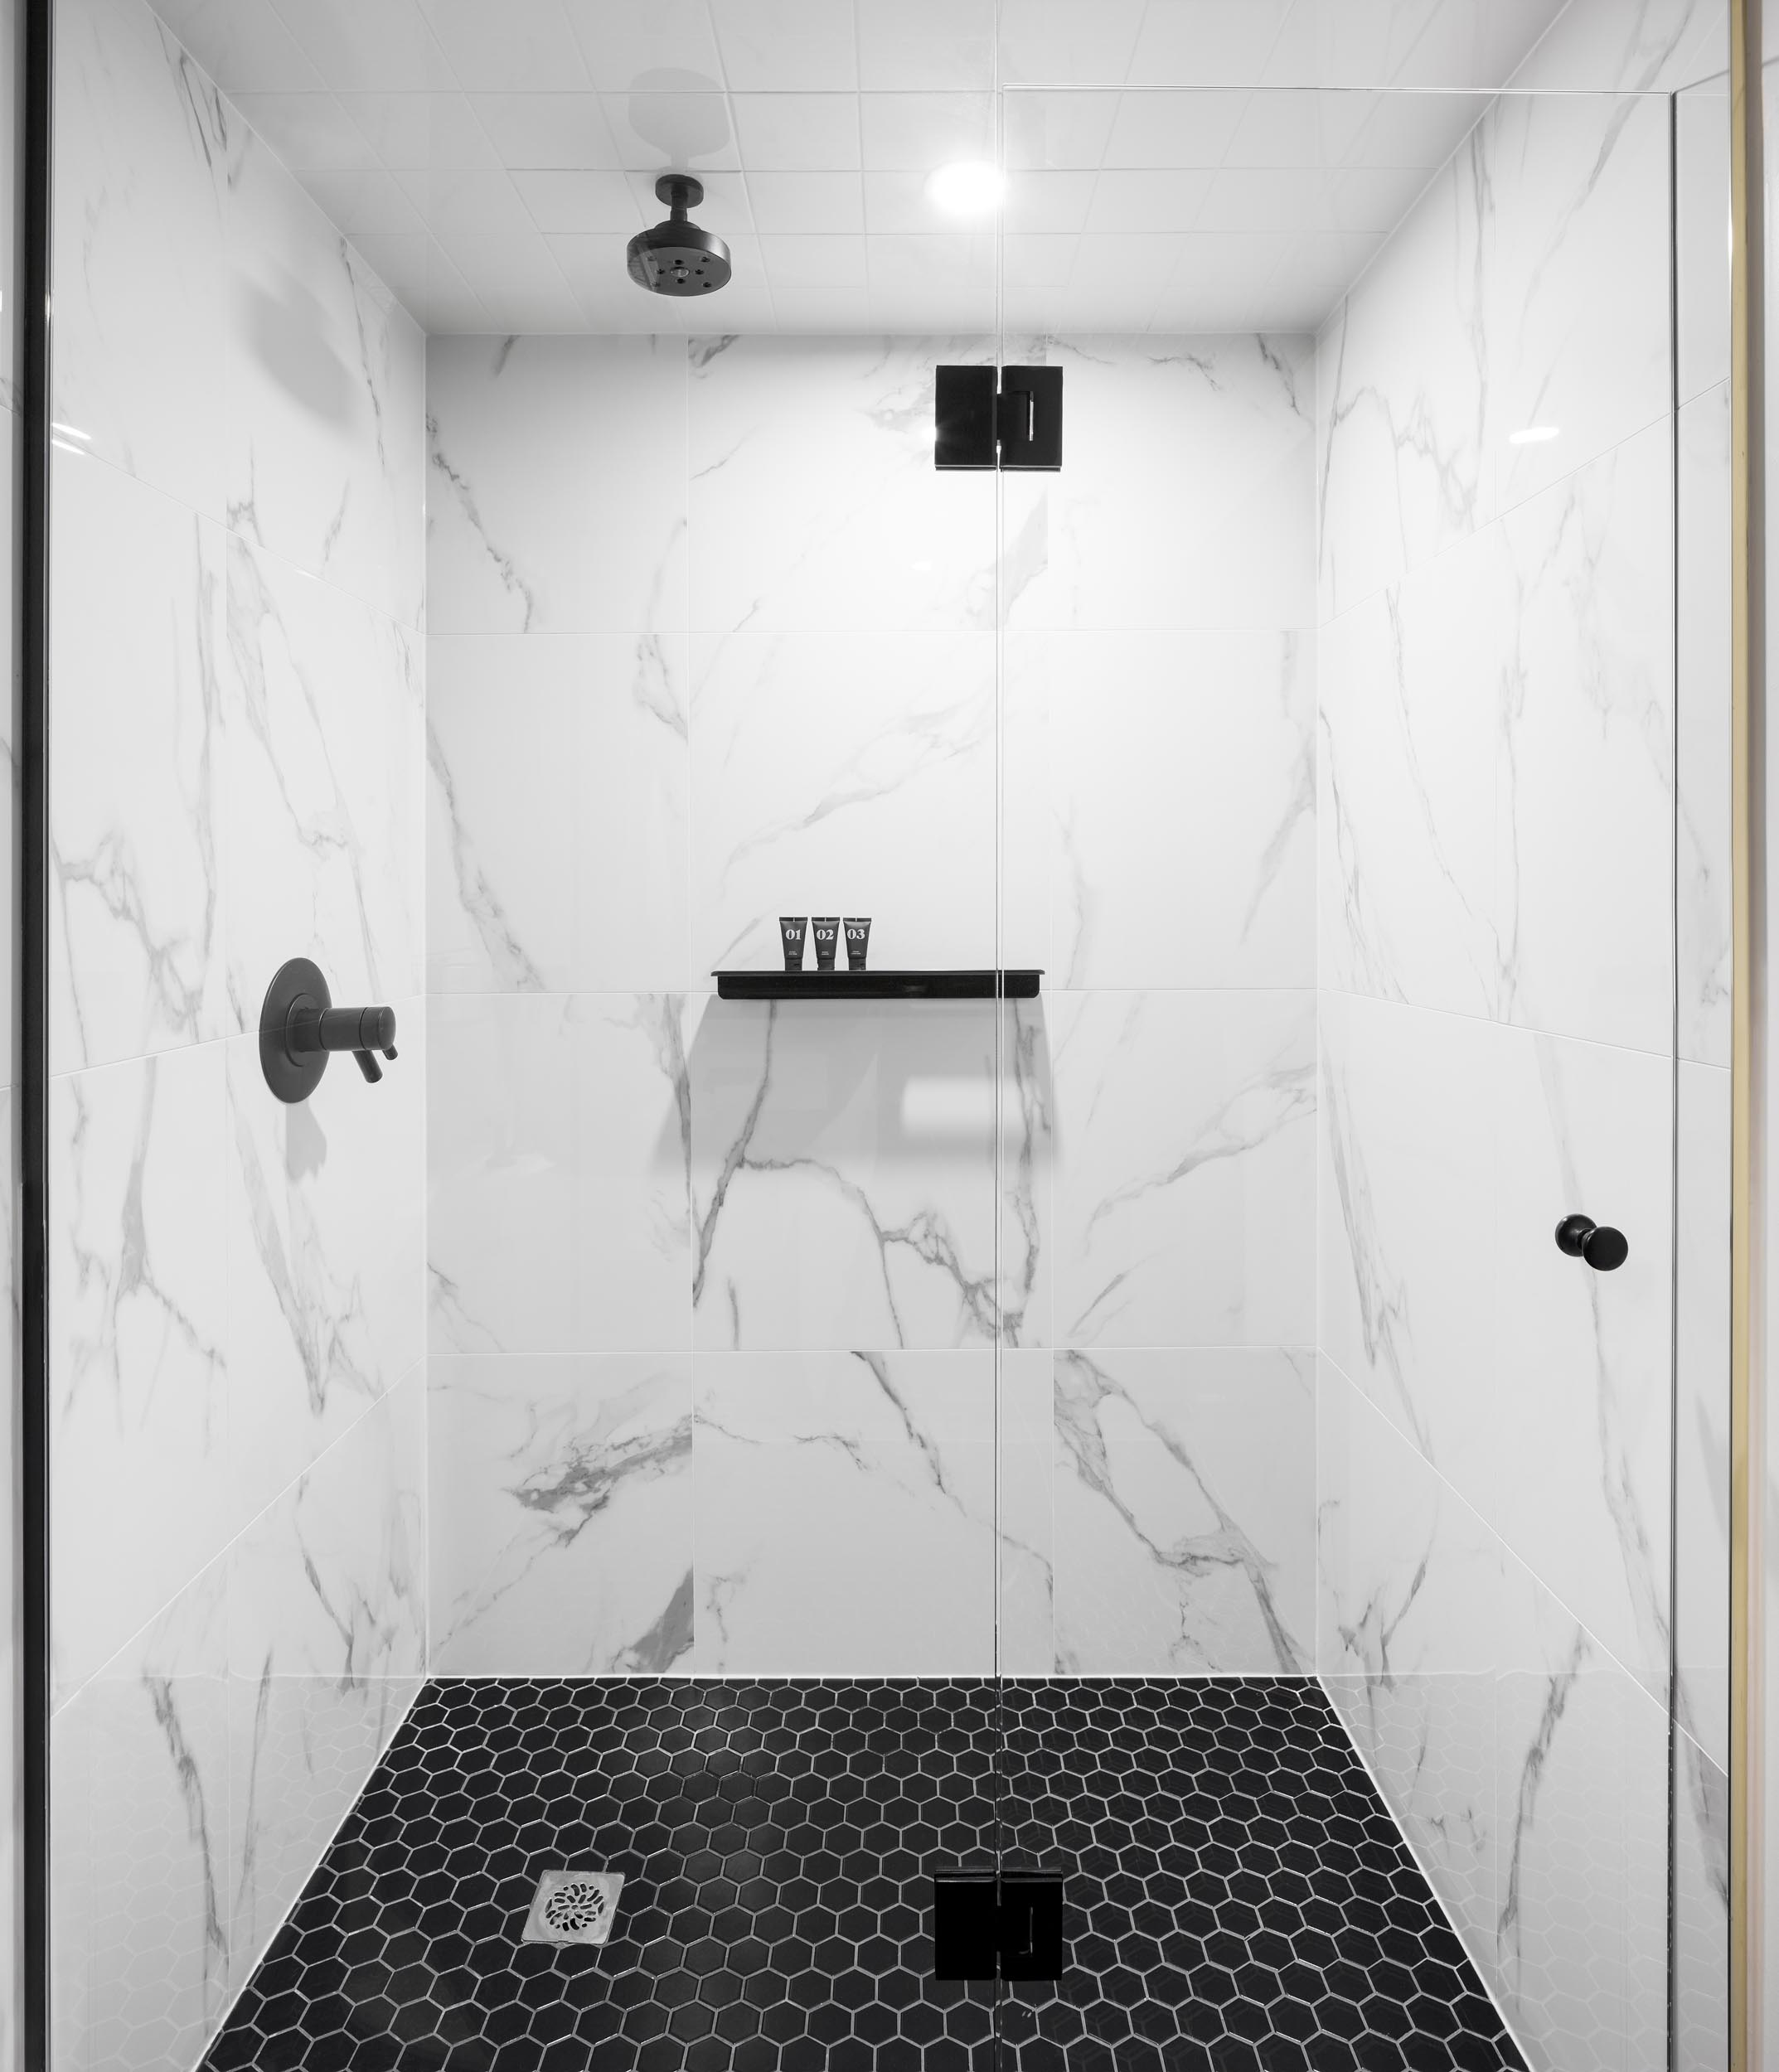 Marble Shower Interior Design Inspiration Photography by Worker Bee Supply